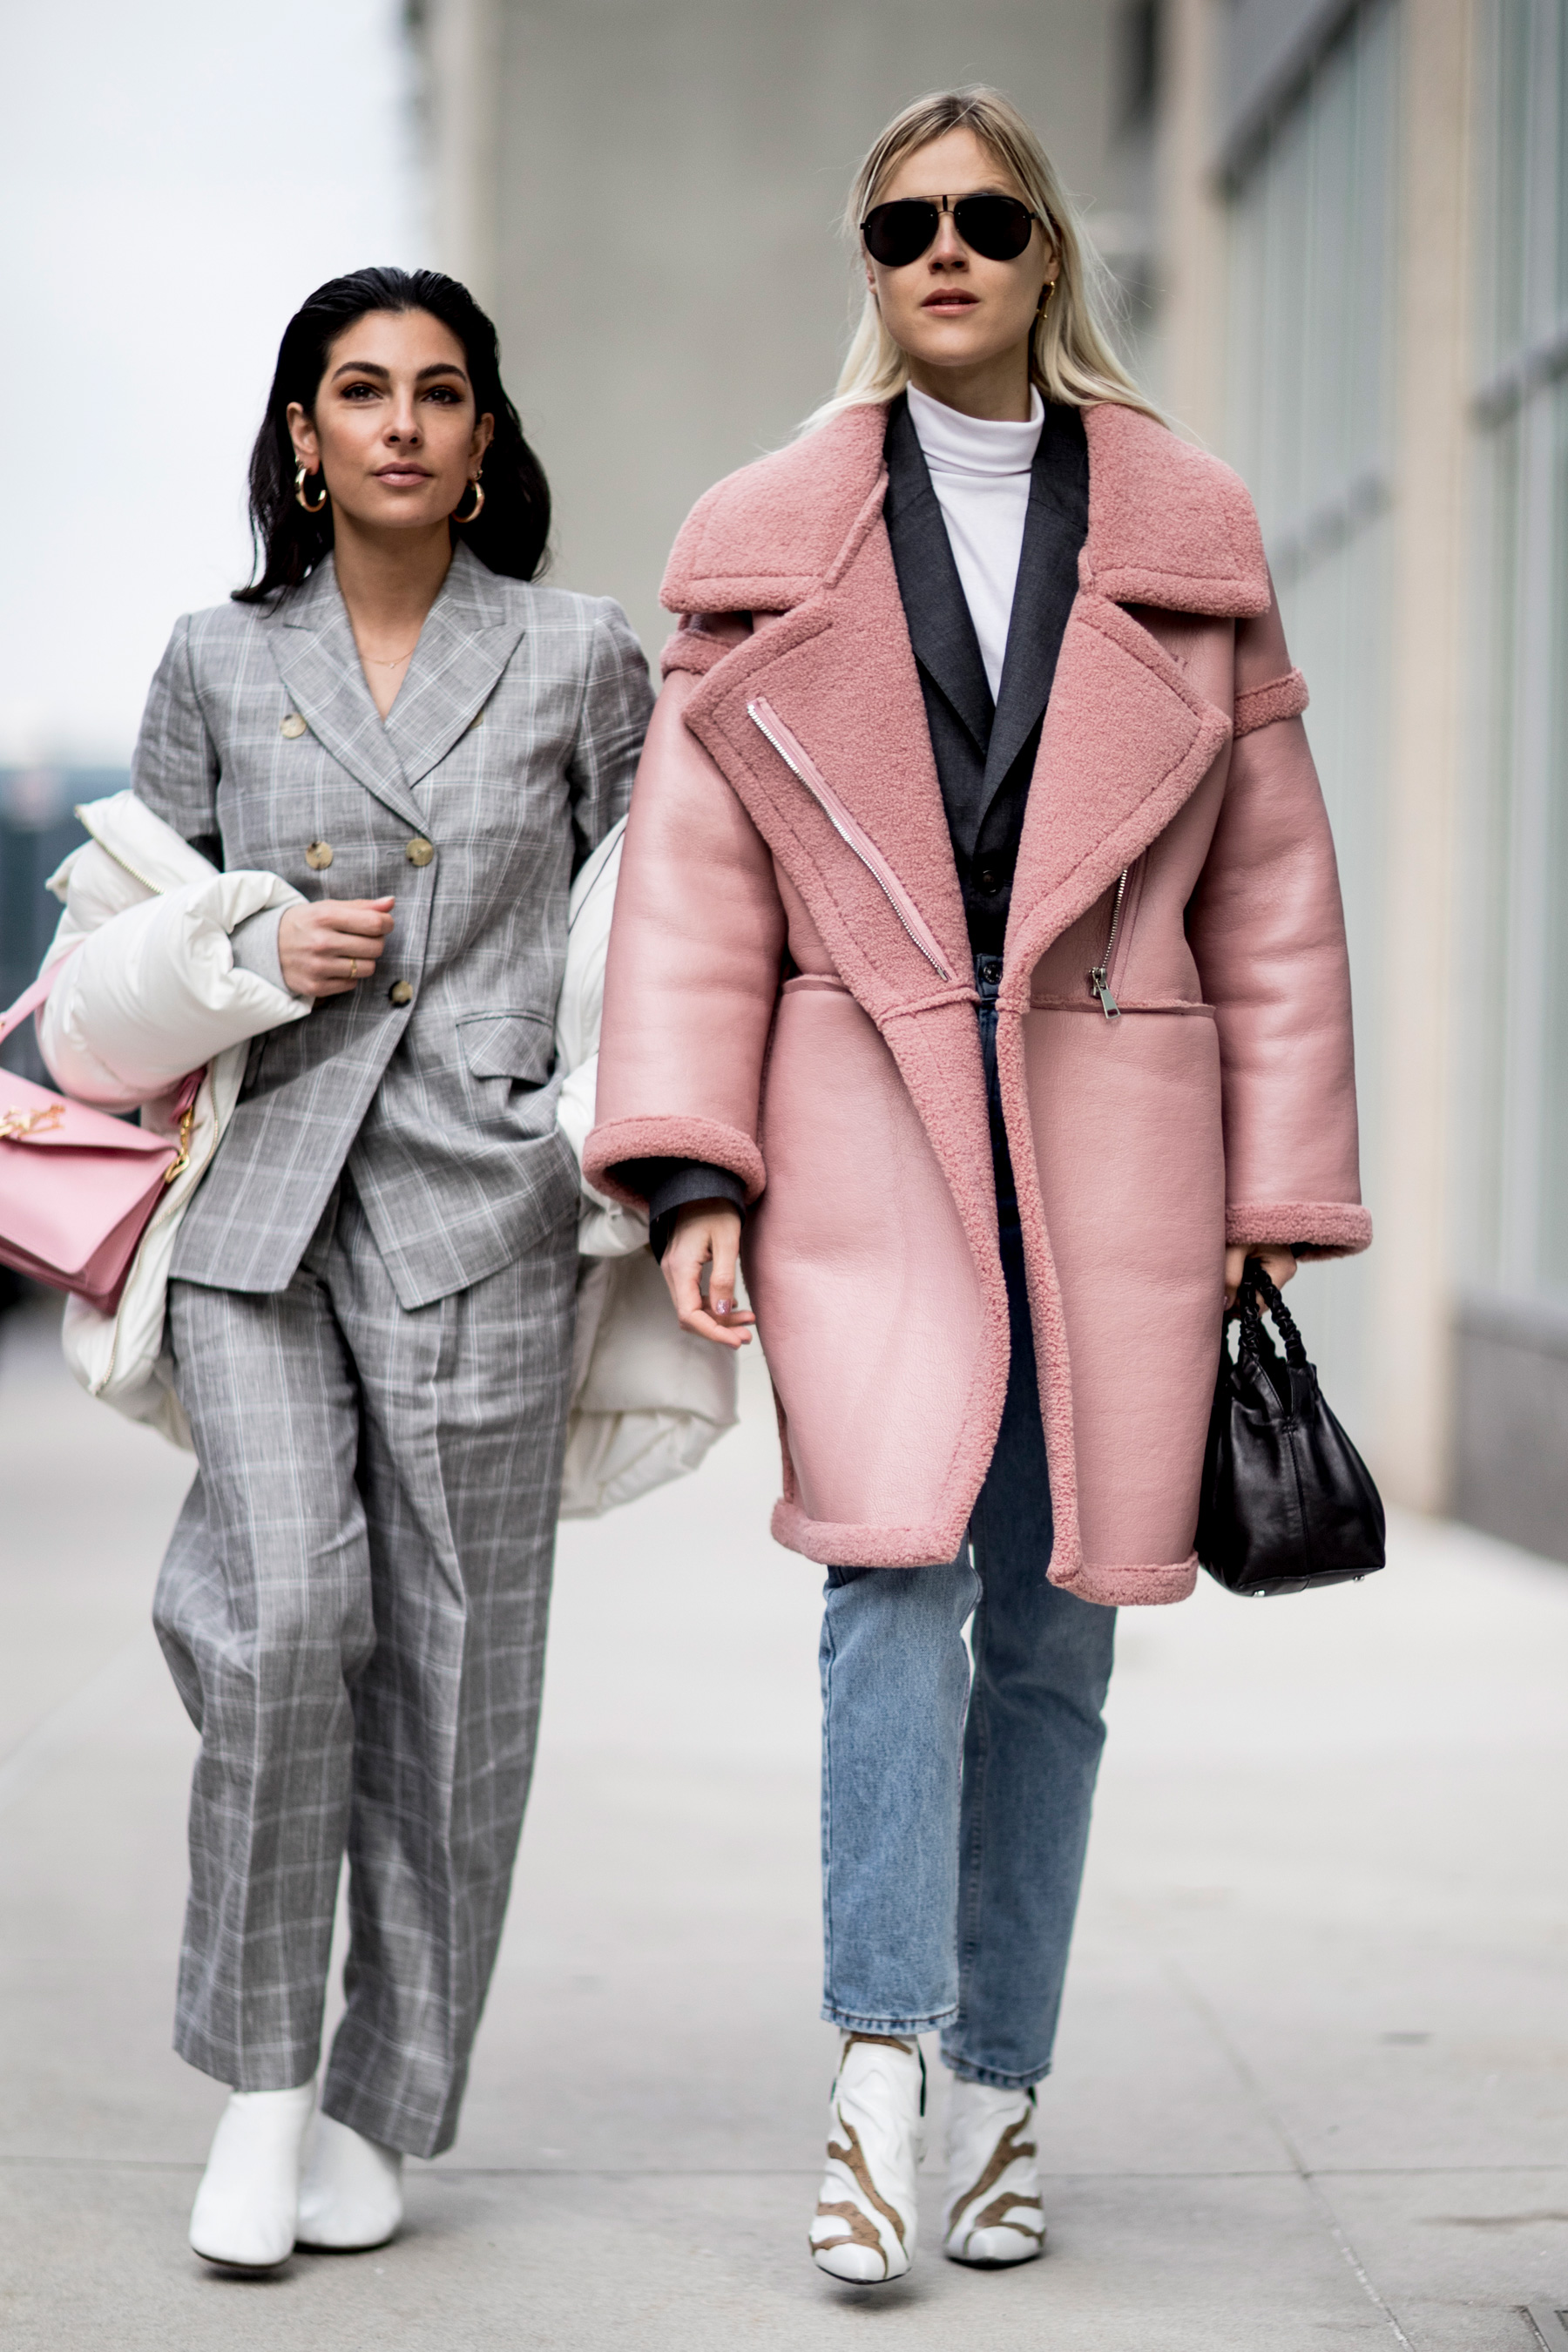 The Top 50 New York Street Style Looks from Fall 2018